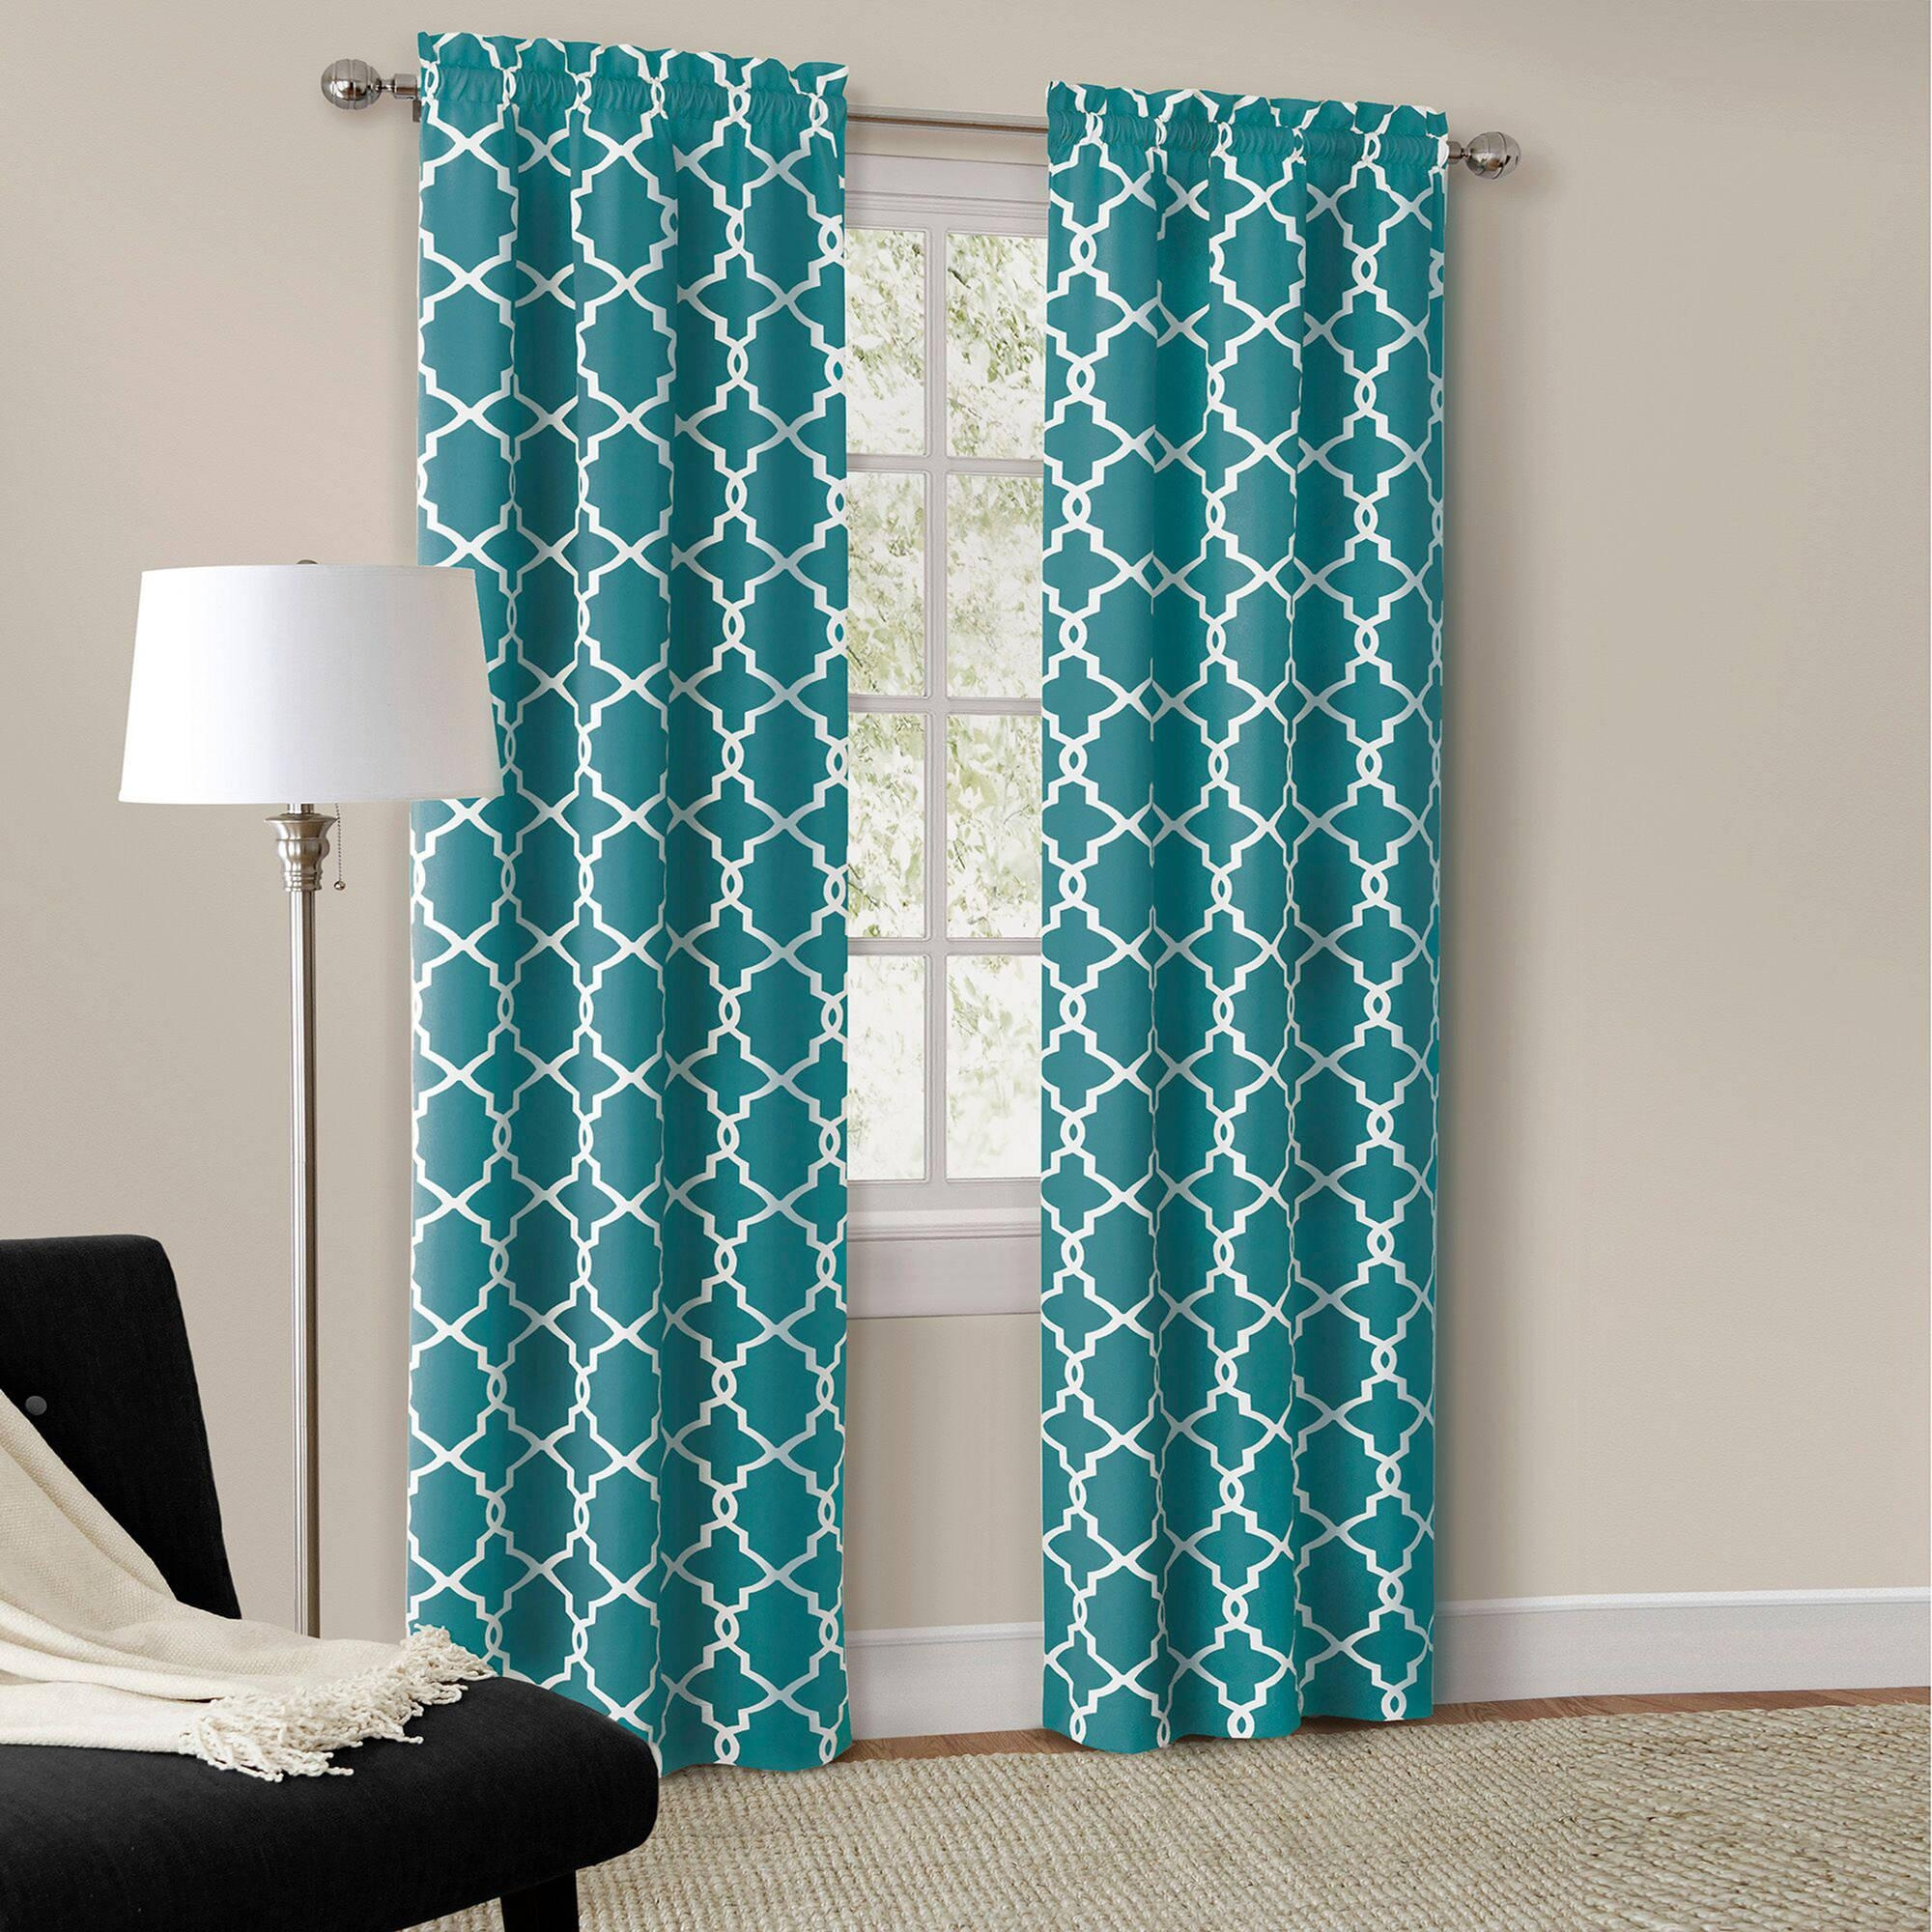 Window Blackout Drapes Walmart Curtains And Drapes 72 Inch Intended For 96 Inches Long Curtains (Image 25 of 25)